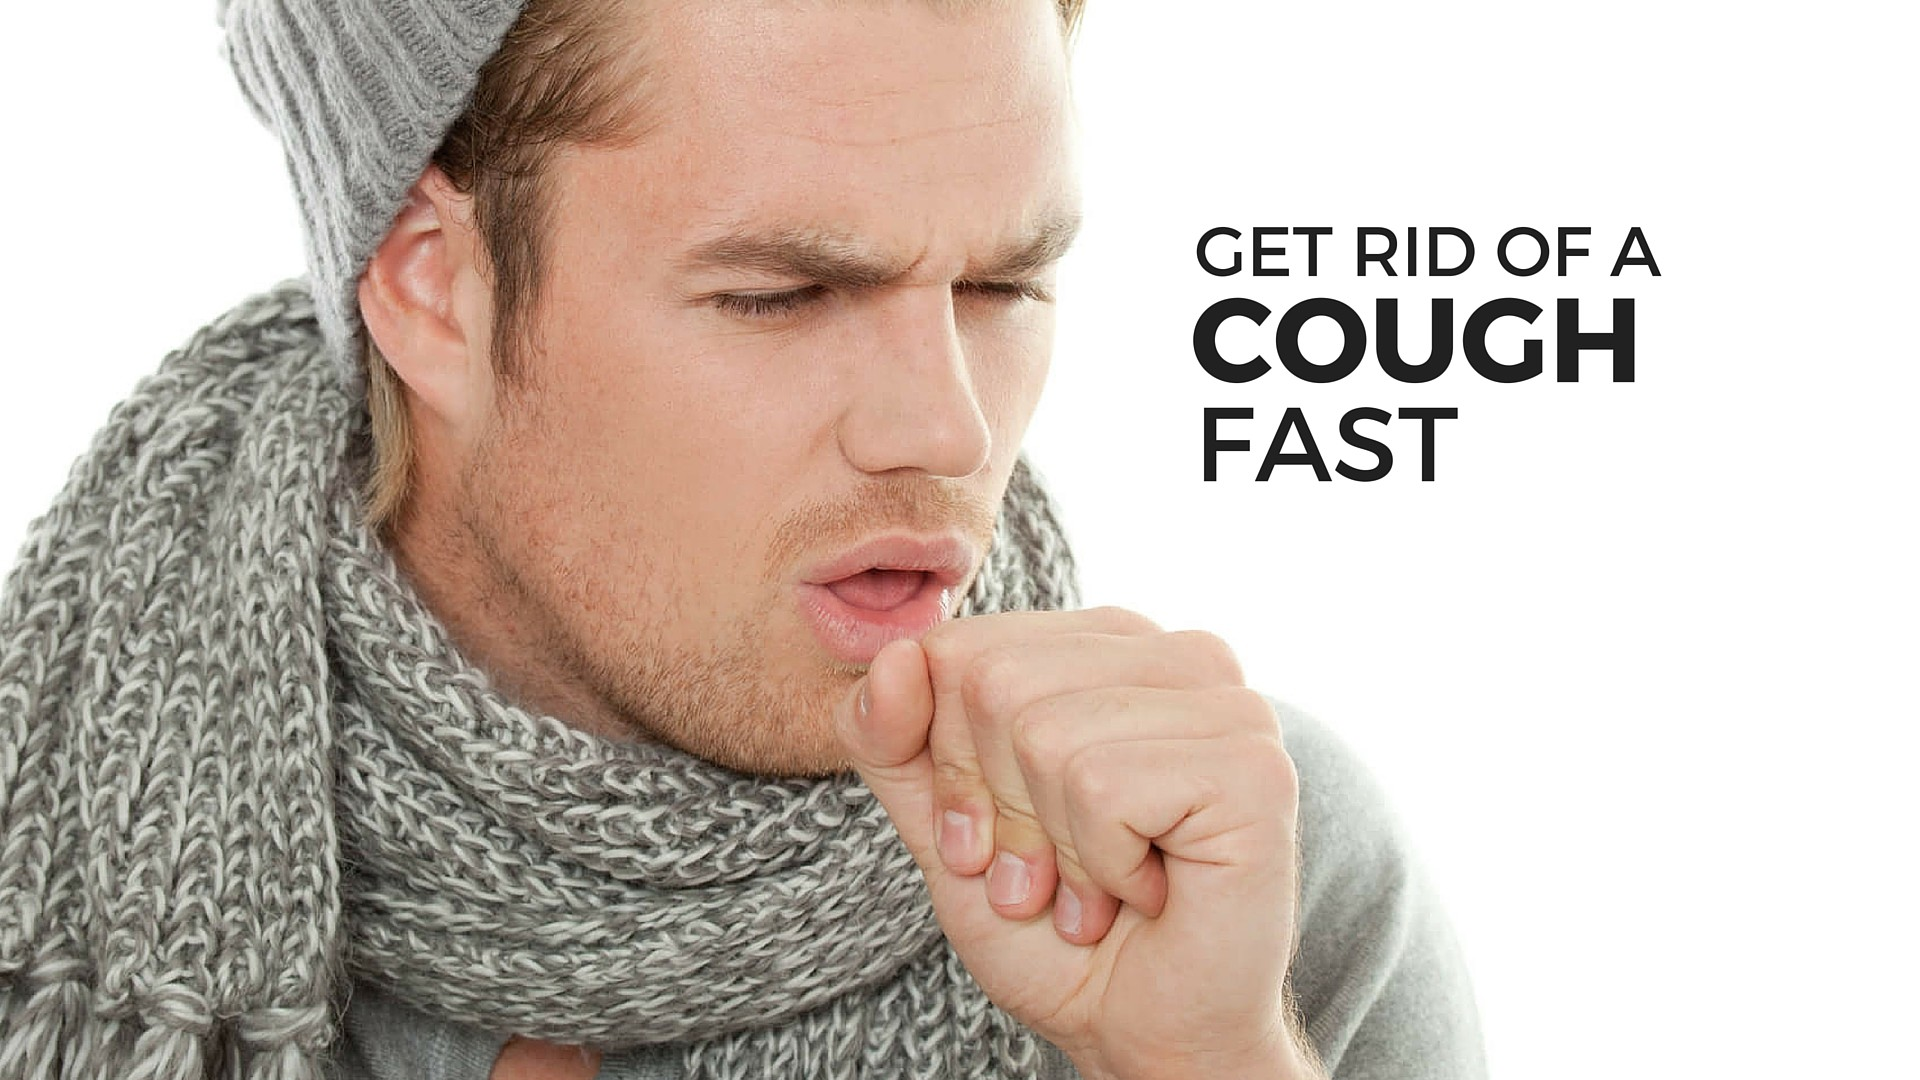 How To Get Rid Of Cough Quickly Naturally